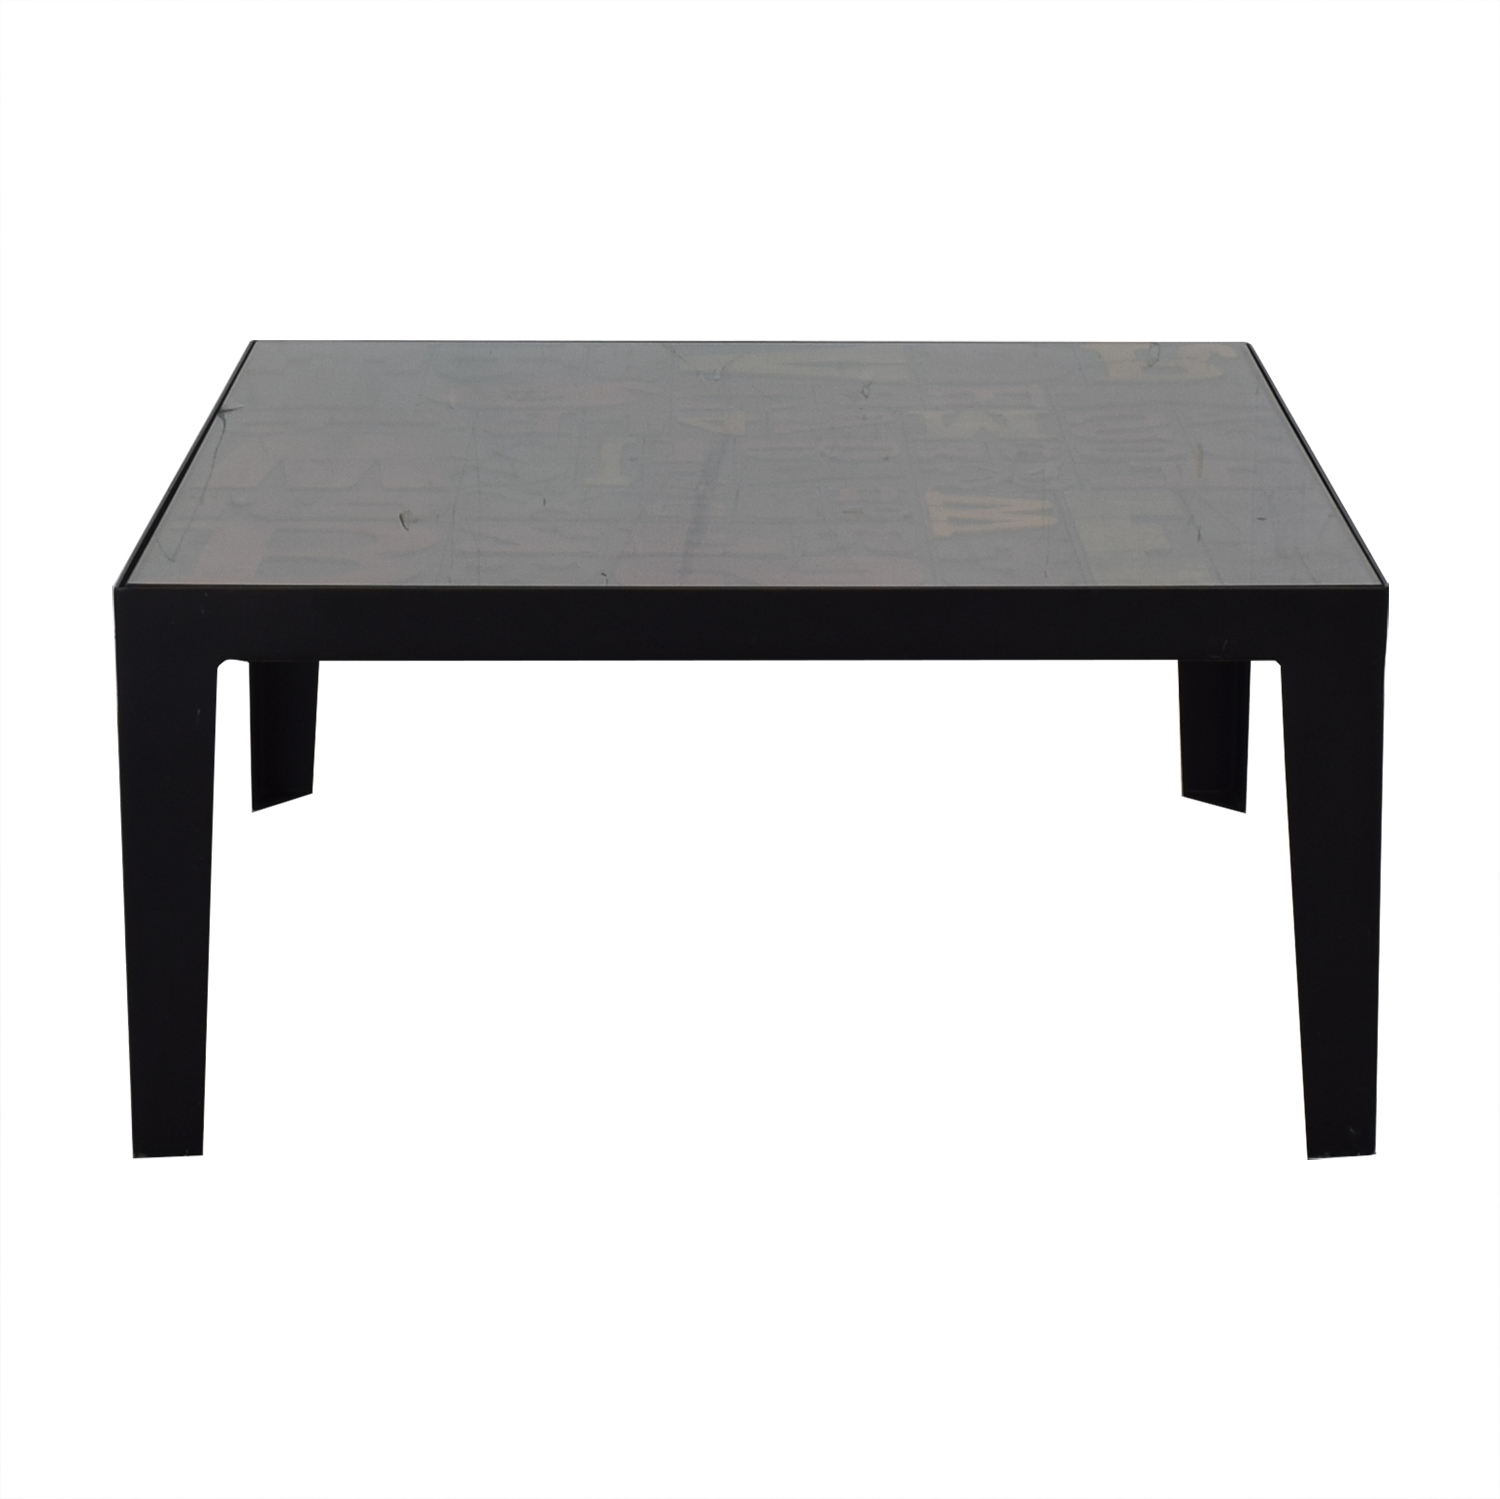 Crate & Barrel Crate &  Barrel Alpha Coffee Table used